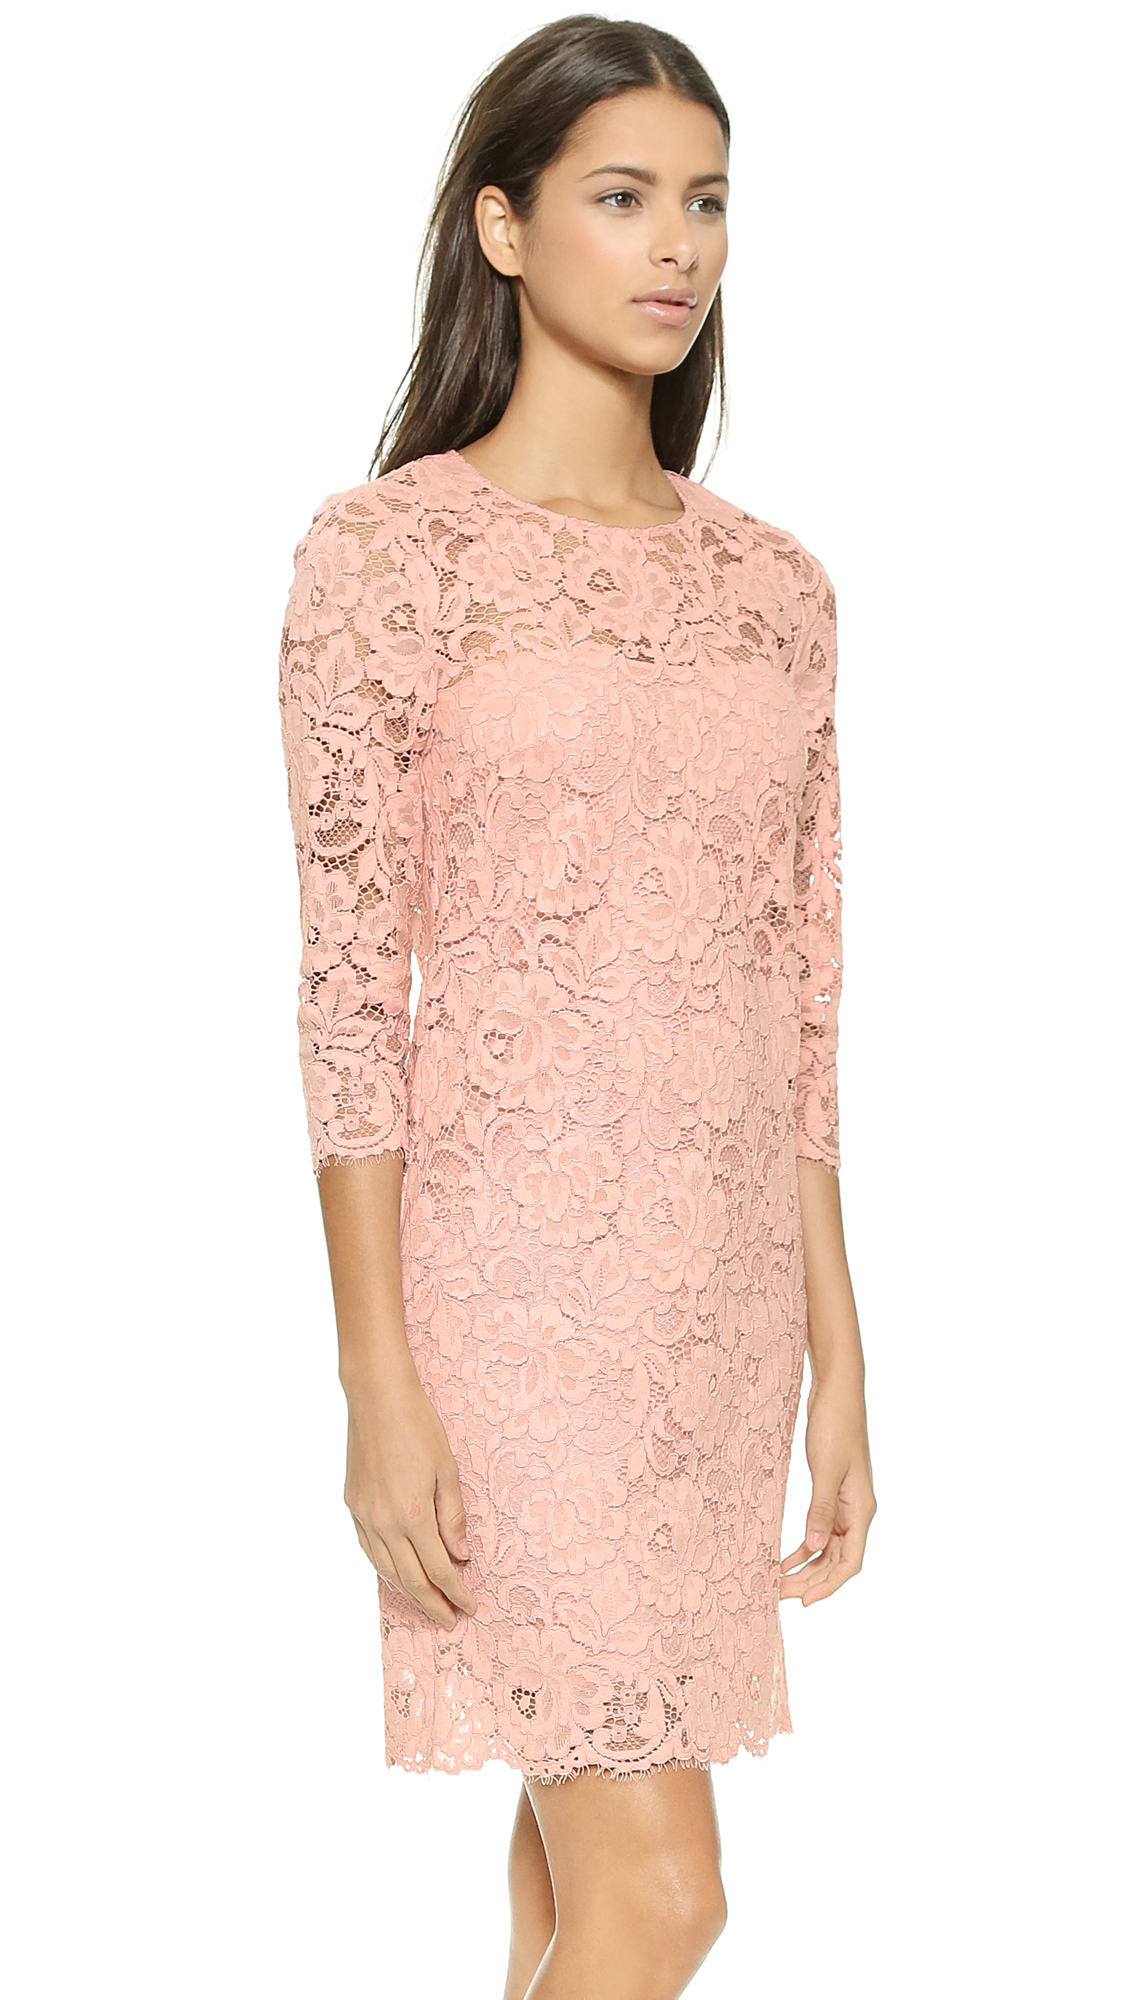 Dkny 3/4 Sleeve Lace Shift Dress - Blush in Pink - Lyst